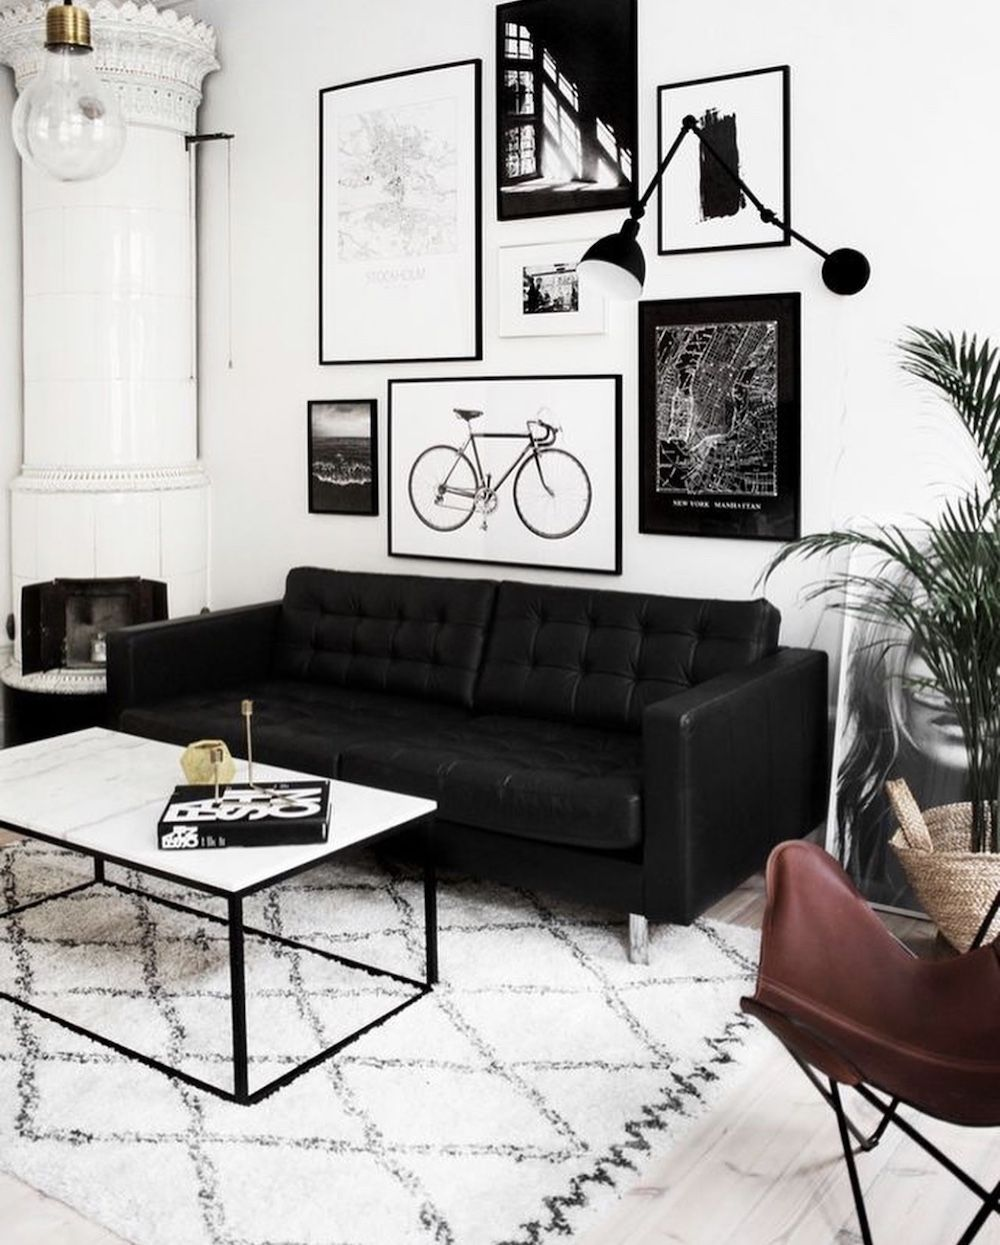 10 Black Sofas For A Dramatic Look White Living Room Decor Black Sofa Living Room Living Room White